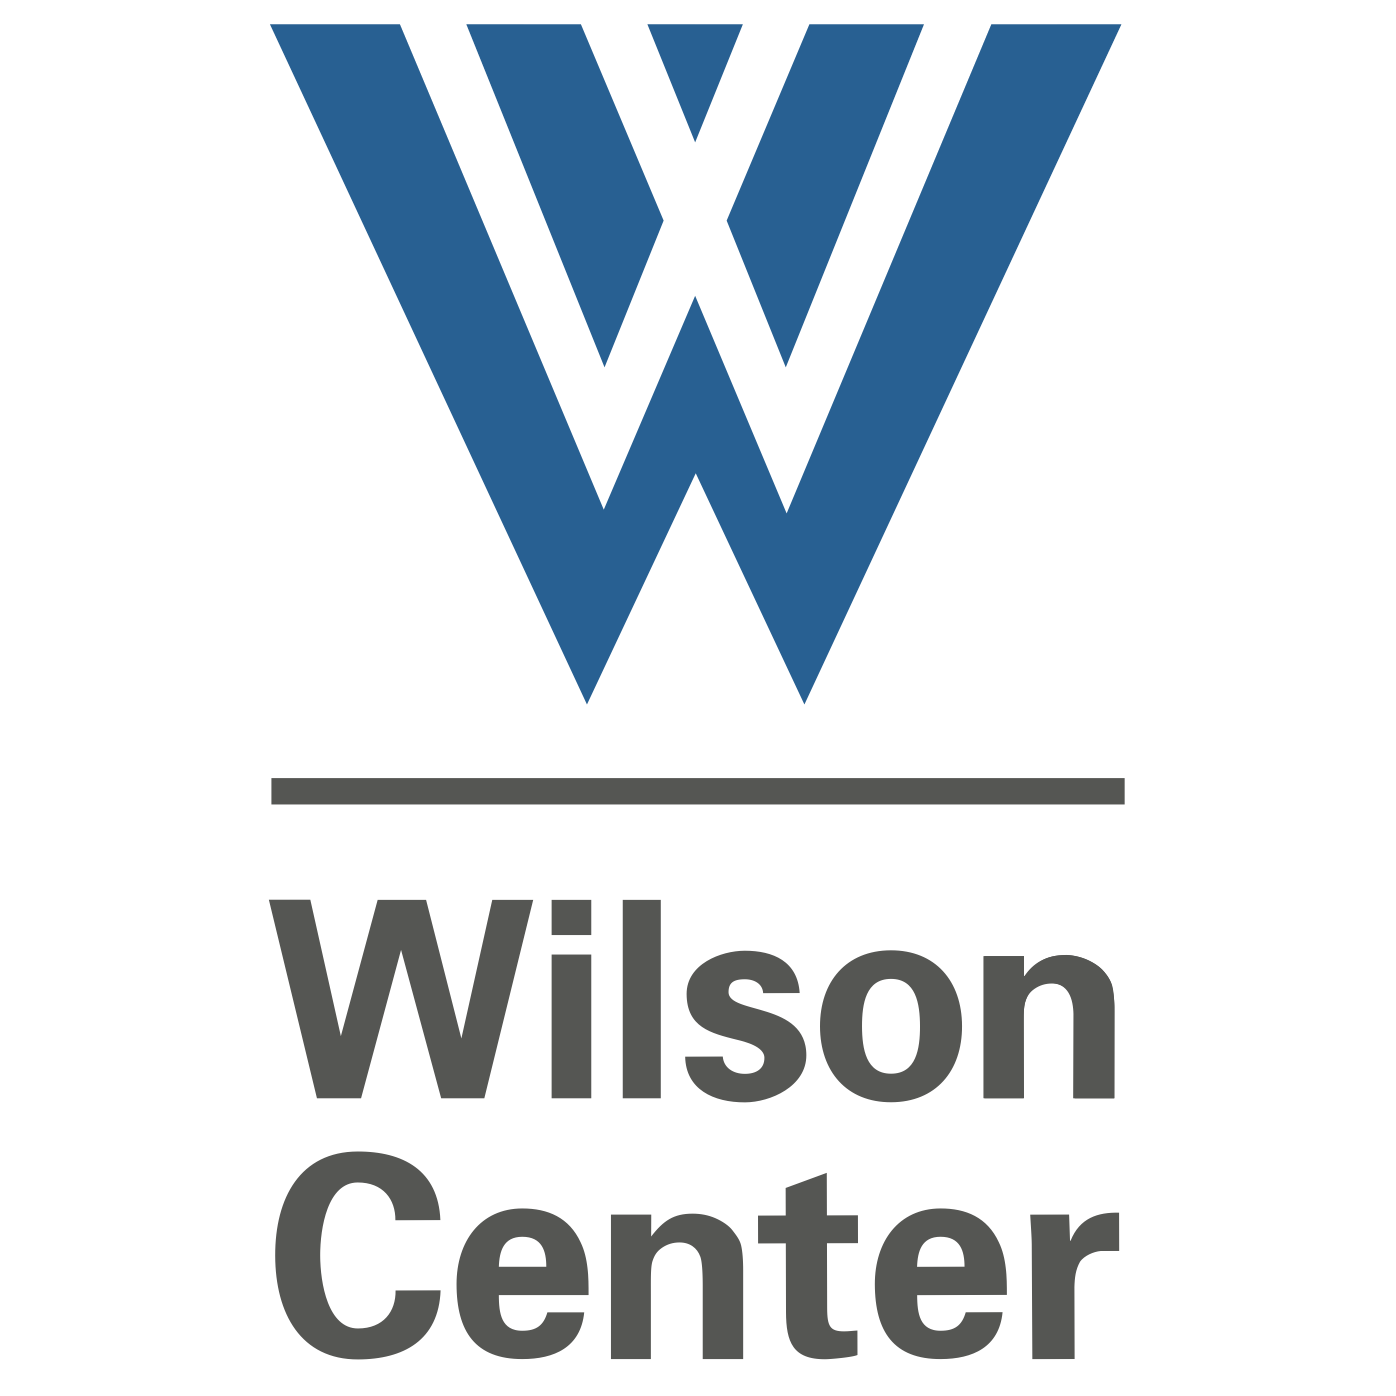 The_Wilson_Center_Logo_-_Vertical.png